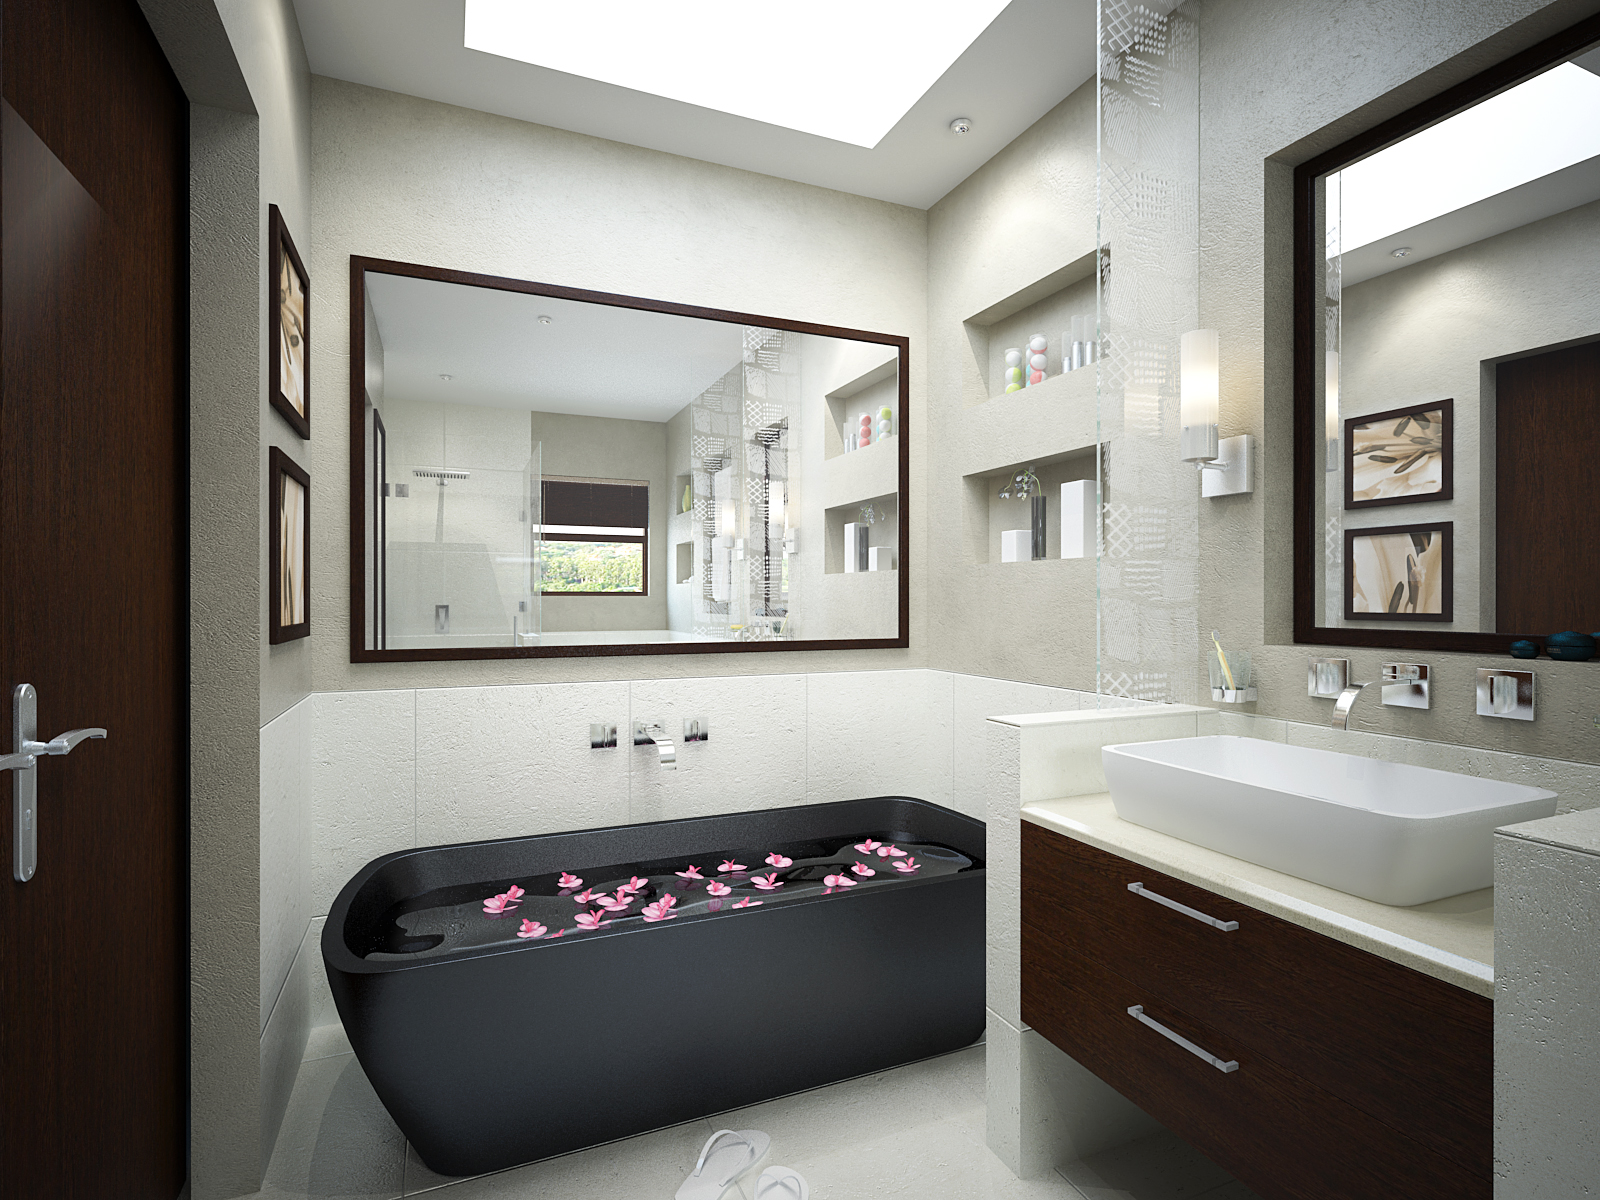 home bathroom design ideas photo - 9